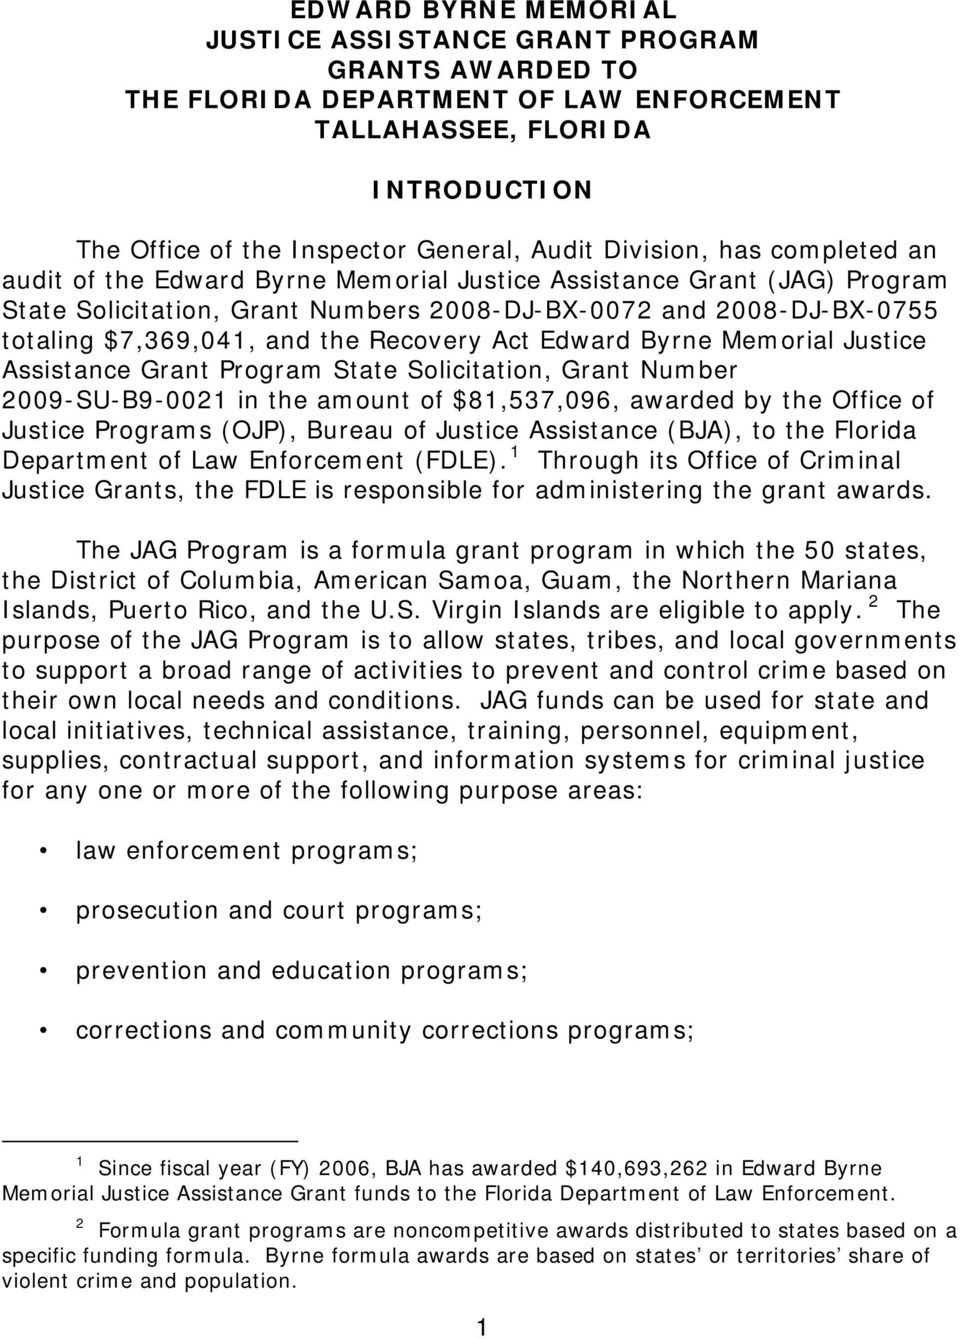 Recovery Act Edward Byrne Memorial Justice Assistance Grant Program State Solicitation, Grant Number 2009-SU-B9-0021 in the amount of $81,537,096, awarded by the Office of Justice Programs (OJP),